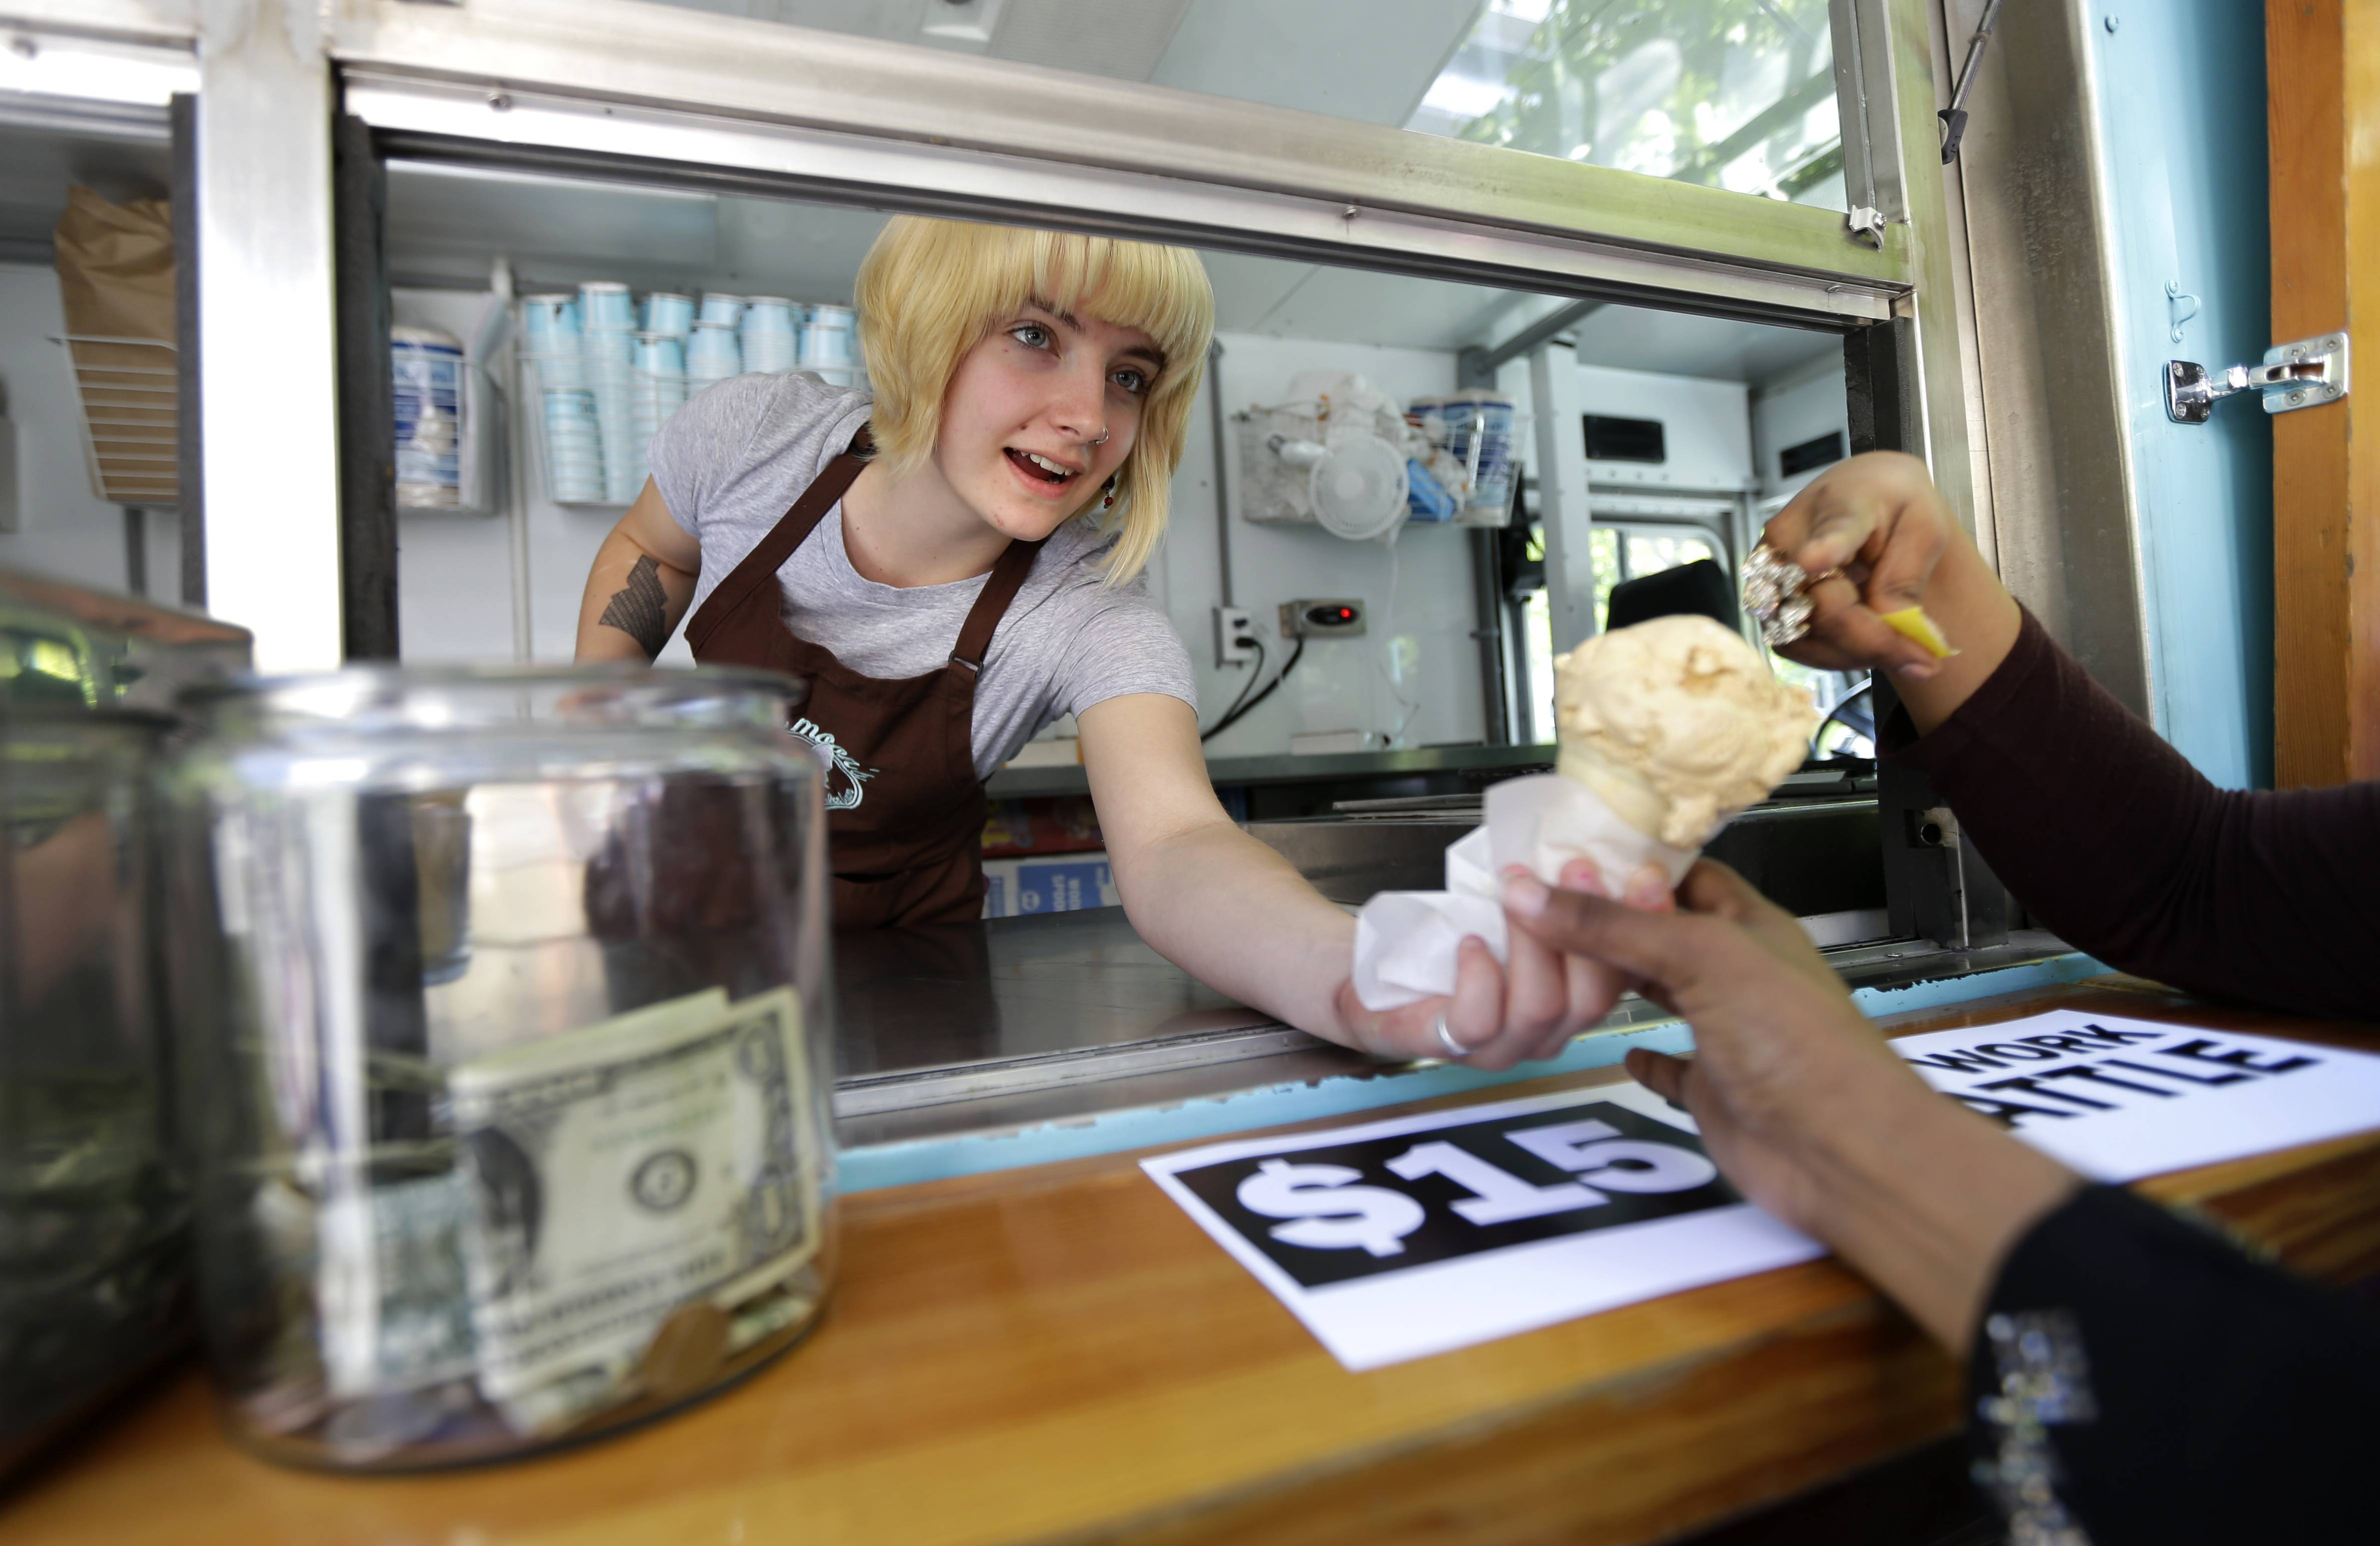 Caitlyn Faircloth, a worker with Molly Moon's Homemade Ice Cream, hands out free ice cream next to a tip jar, Monday, June 2, 2014, at a rally celebrating the passage of a $15 minimum wage measure outside Seattle City Hall in Seattle.